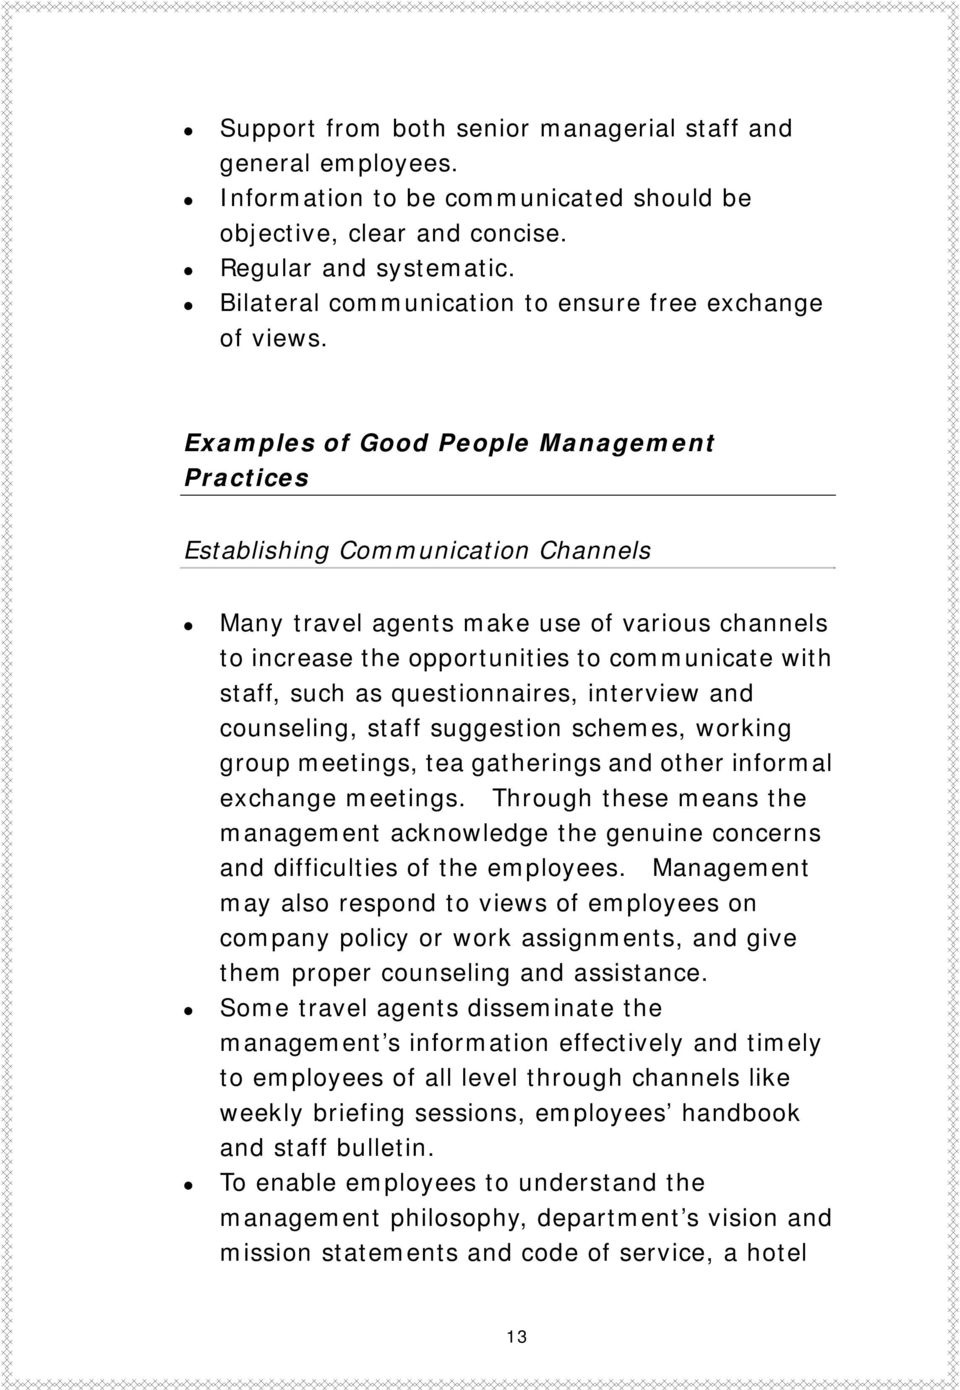 Examples of Good People Management Practices Establishing Communication Channels Many travel agents make use of various channels to increase the opportunities to communicate with staff, such as